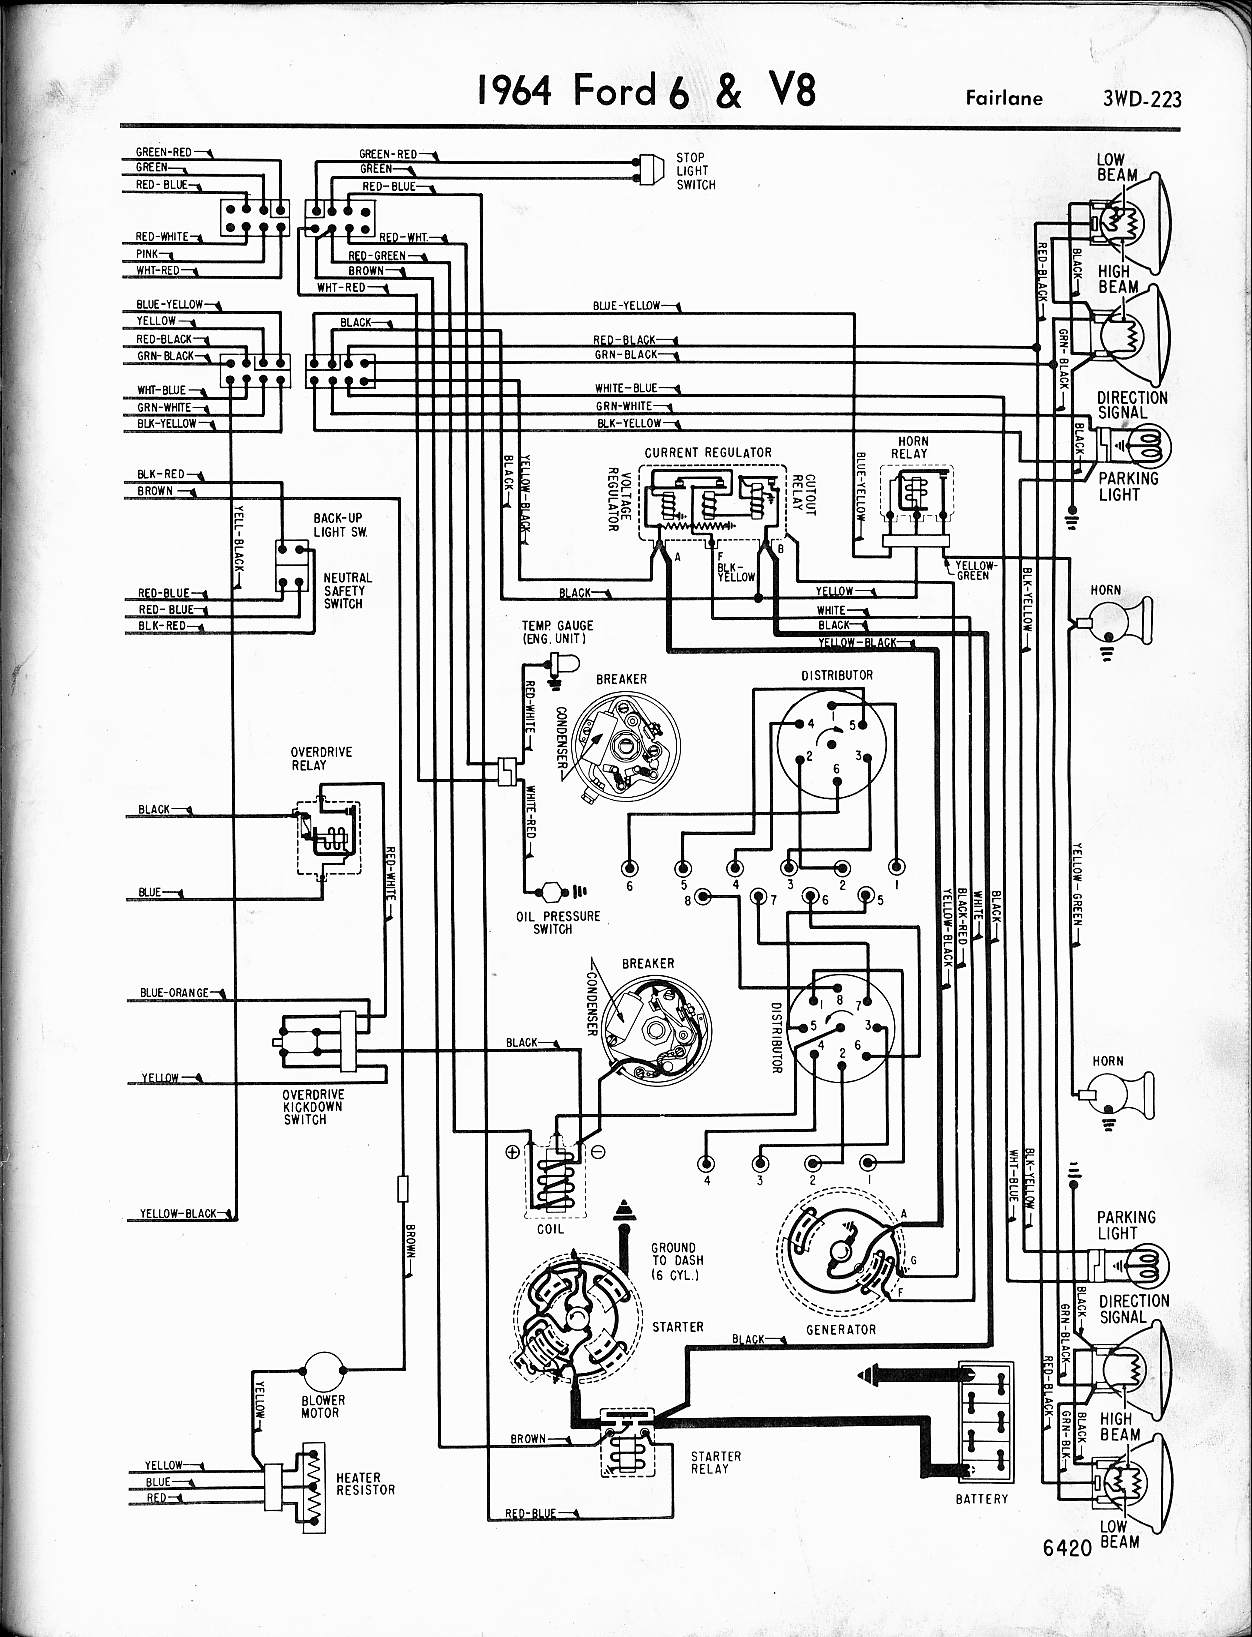 57-65 Ford Wiring Diagrams on 1966 ford ignition switch wiring diagram, 1969 ford ignition switch wiring diagram, 1977 ford ignition switch wiring diagram, 1968 ford ignition switch wiring diagram, 1979 ford ignition switch wiring diagram, 1967 ford ignition switch wiring diagram,